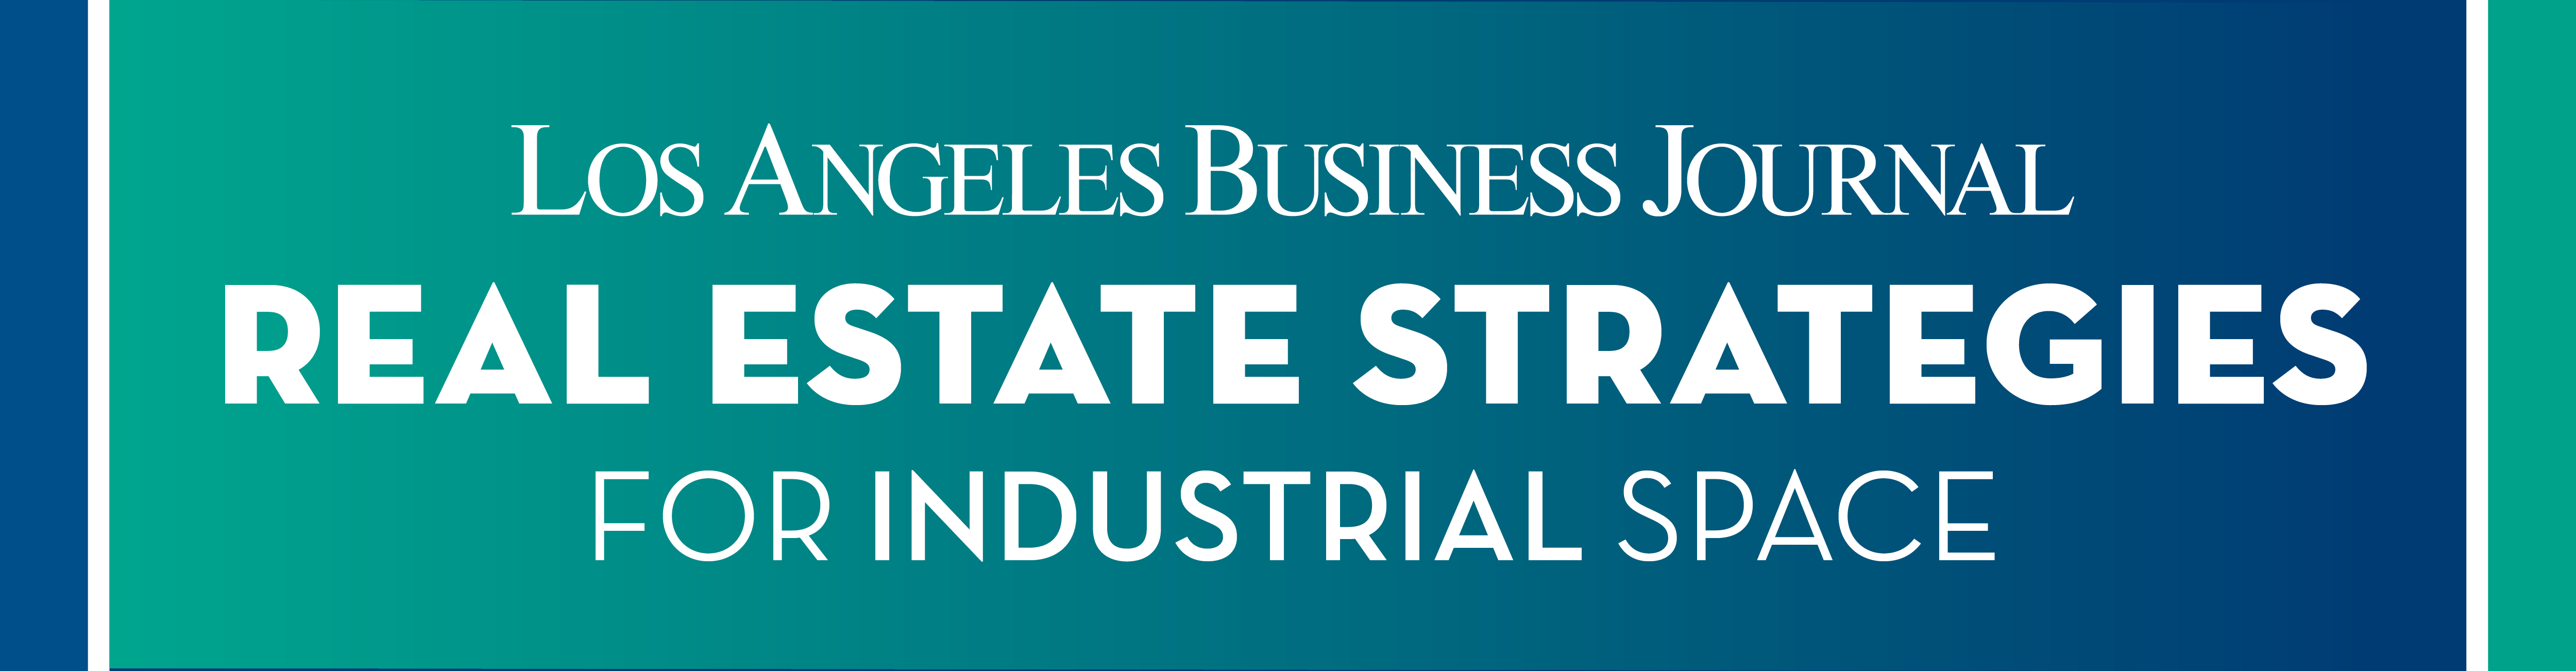 Los Angeles Business Journal Real Estate Strategies for Industrial Space Webinar Event Banner